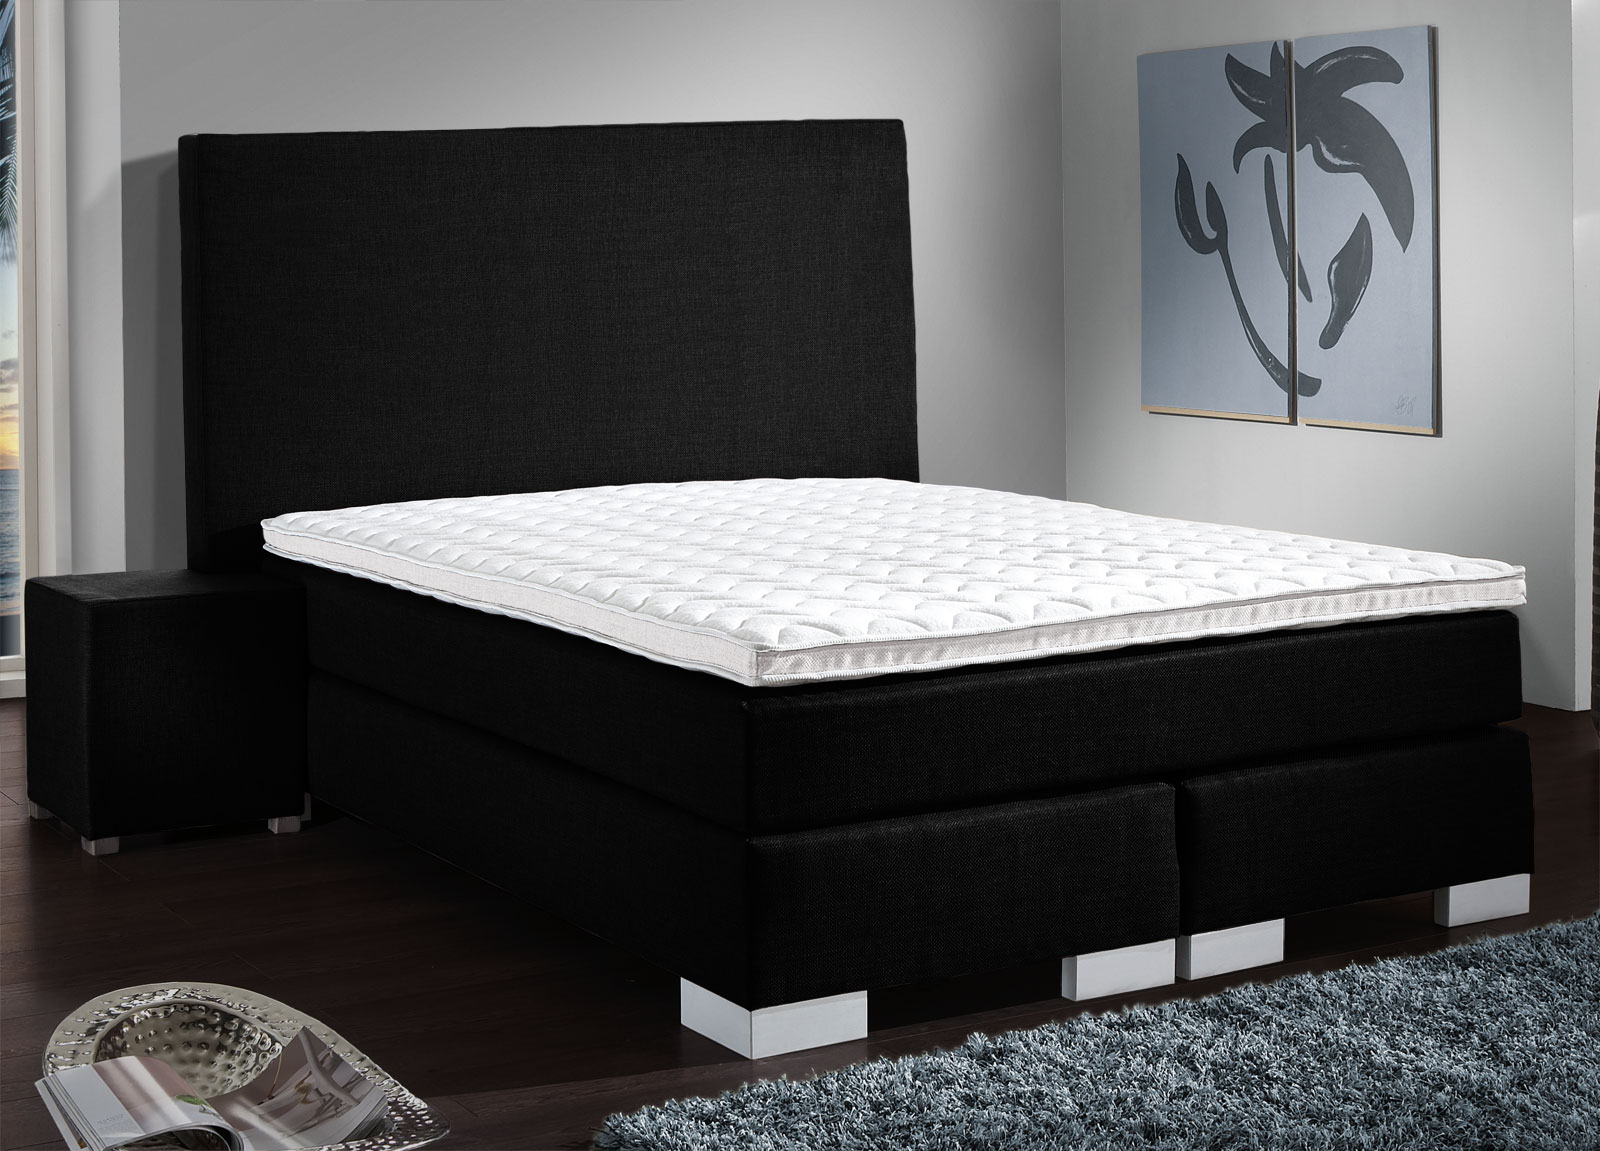 boxspringbett probeliegen und auf rechnung kaufen madeira. Black Bedroom Furniture Sets. Home Design Ideas